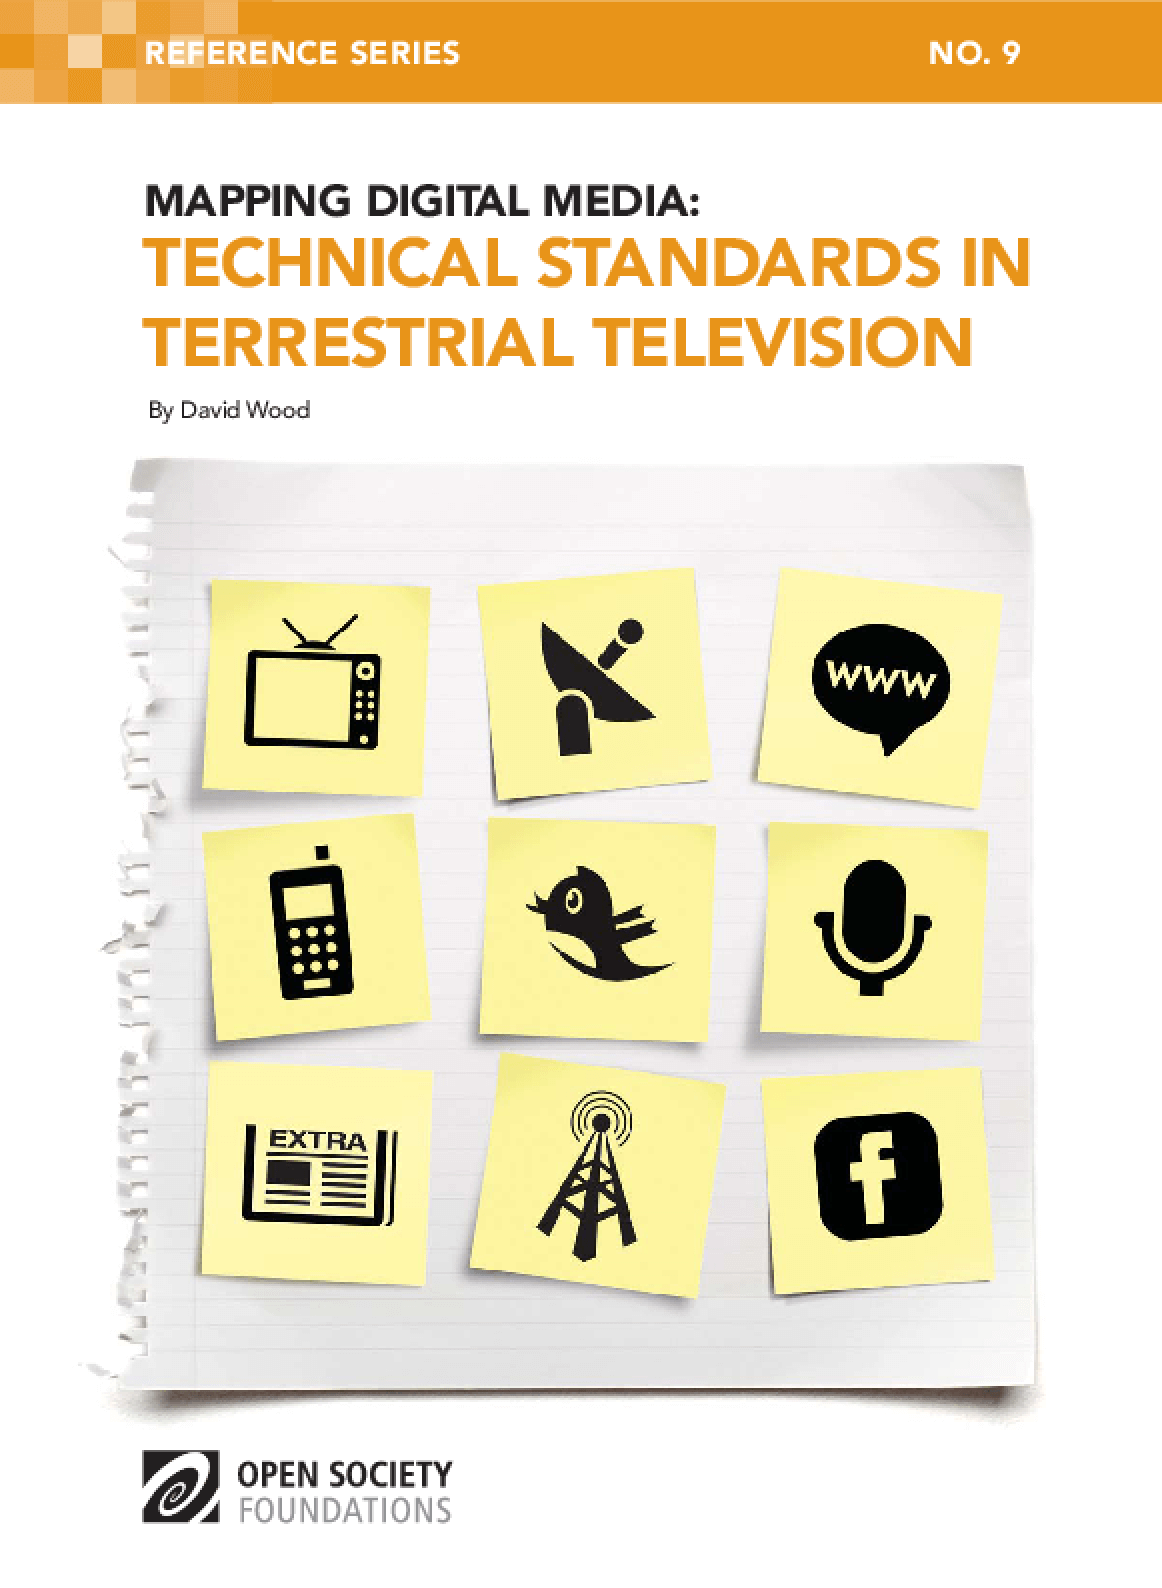 Mapping Digital Media: Technical Standards in Terrestrial Television